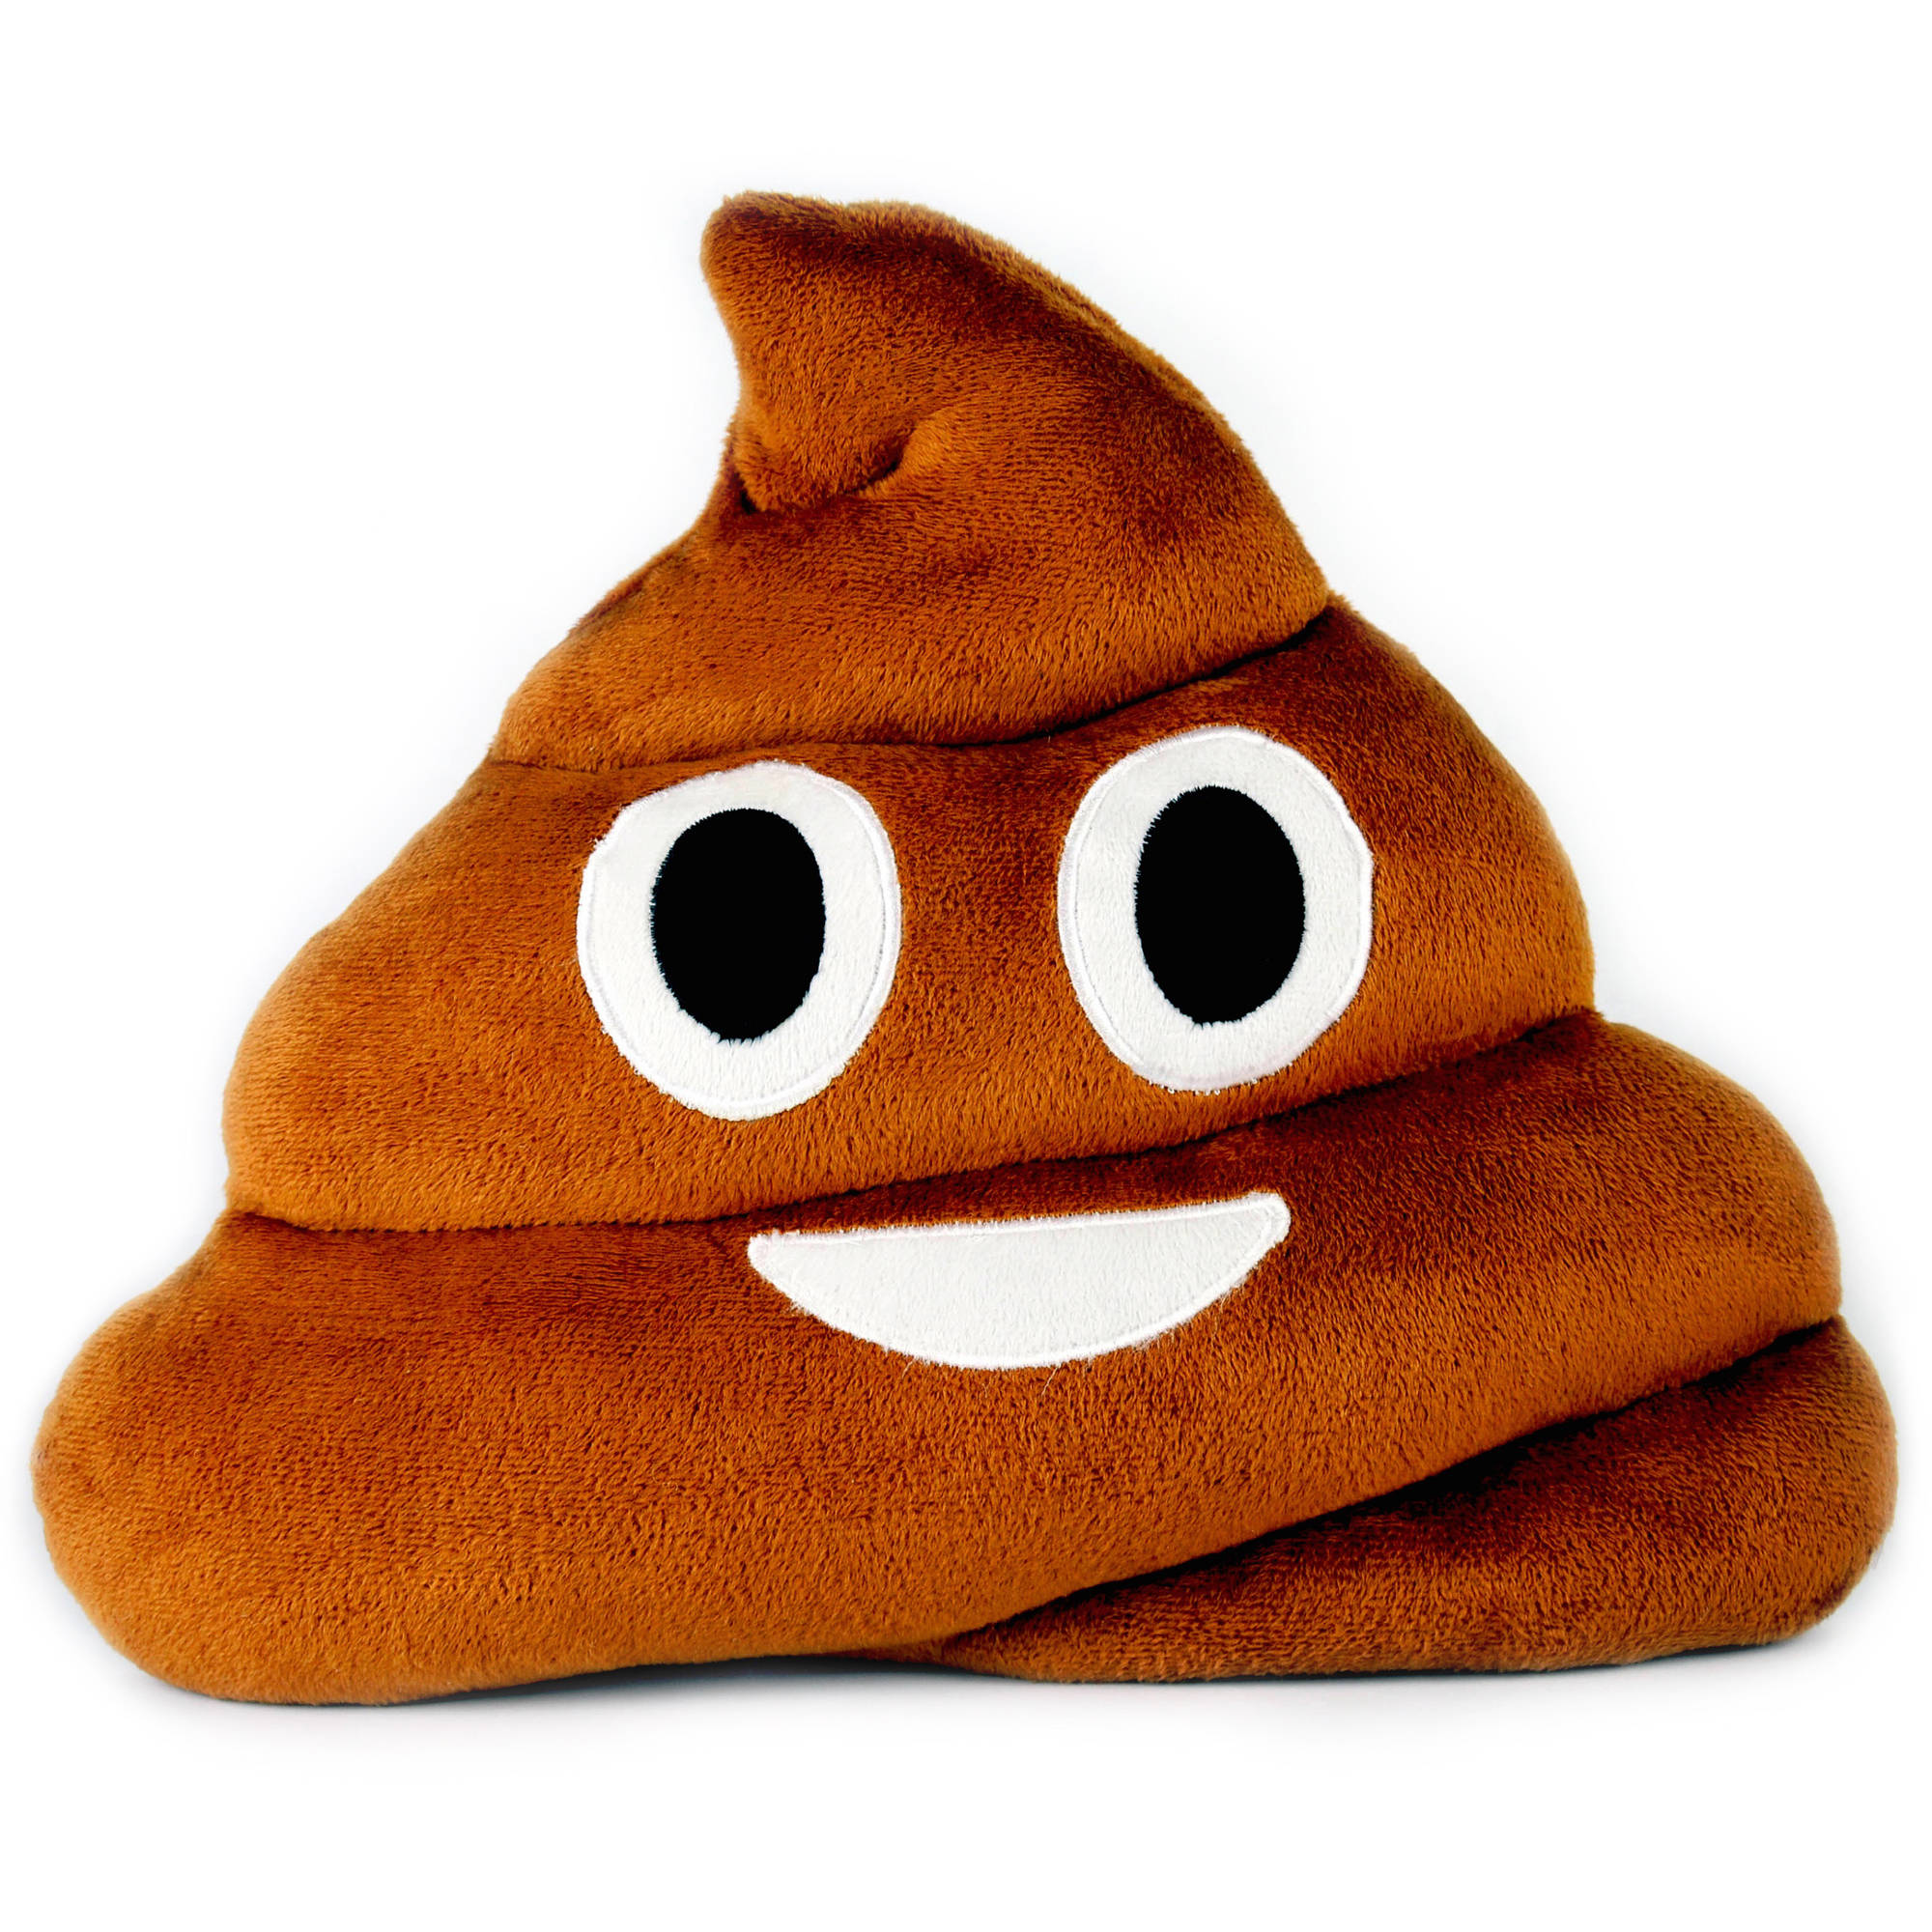 Throwboy The Original Emoji Pillows - Poop